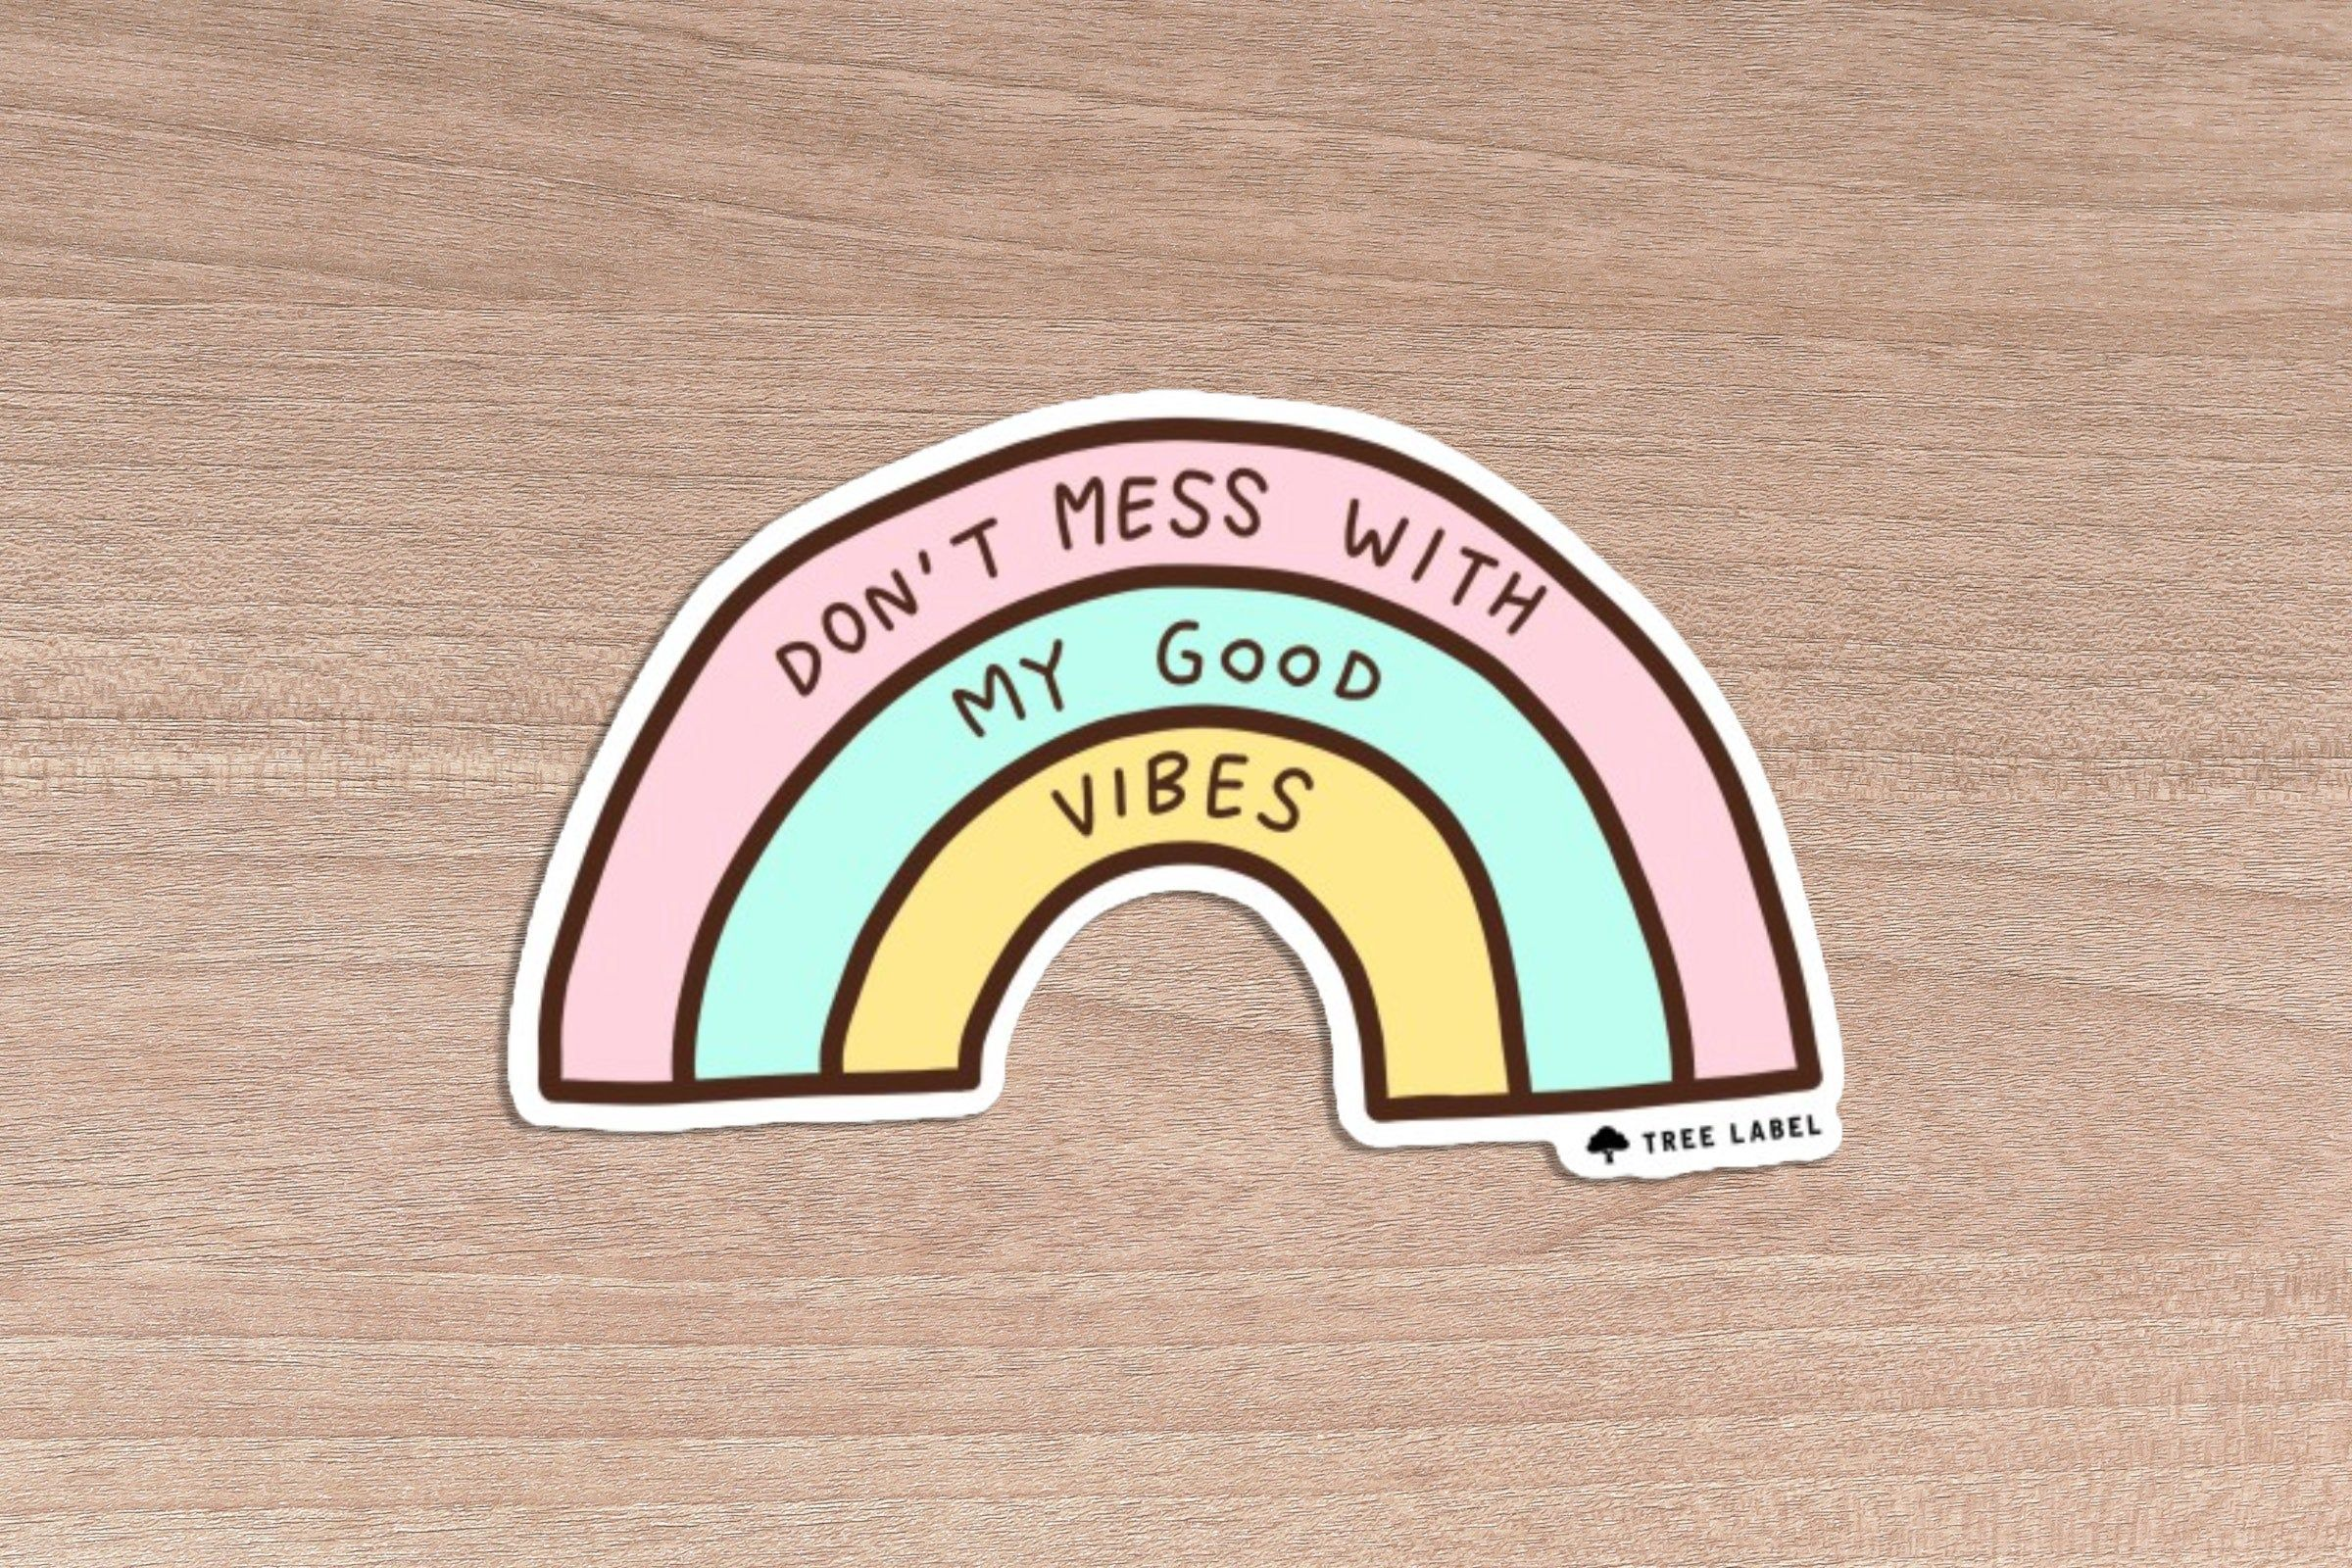 Don T Mess With My Good Vibes Sassy Sticker Feminist Vinyl Sticker Laptop Decal Feminist Bumper Sti Vinyl Stickers Laptop Feminist Sticker I Am Awesome [ 1600 x 2400 Pixel ]